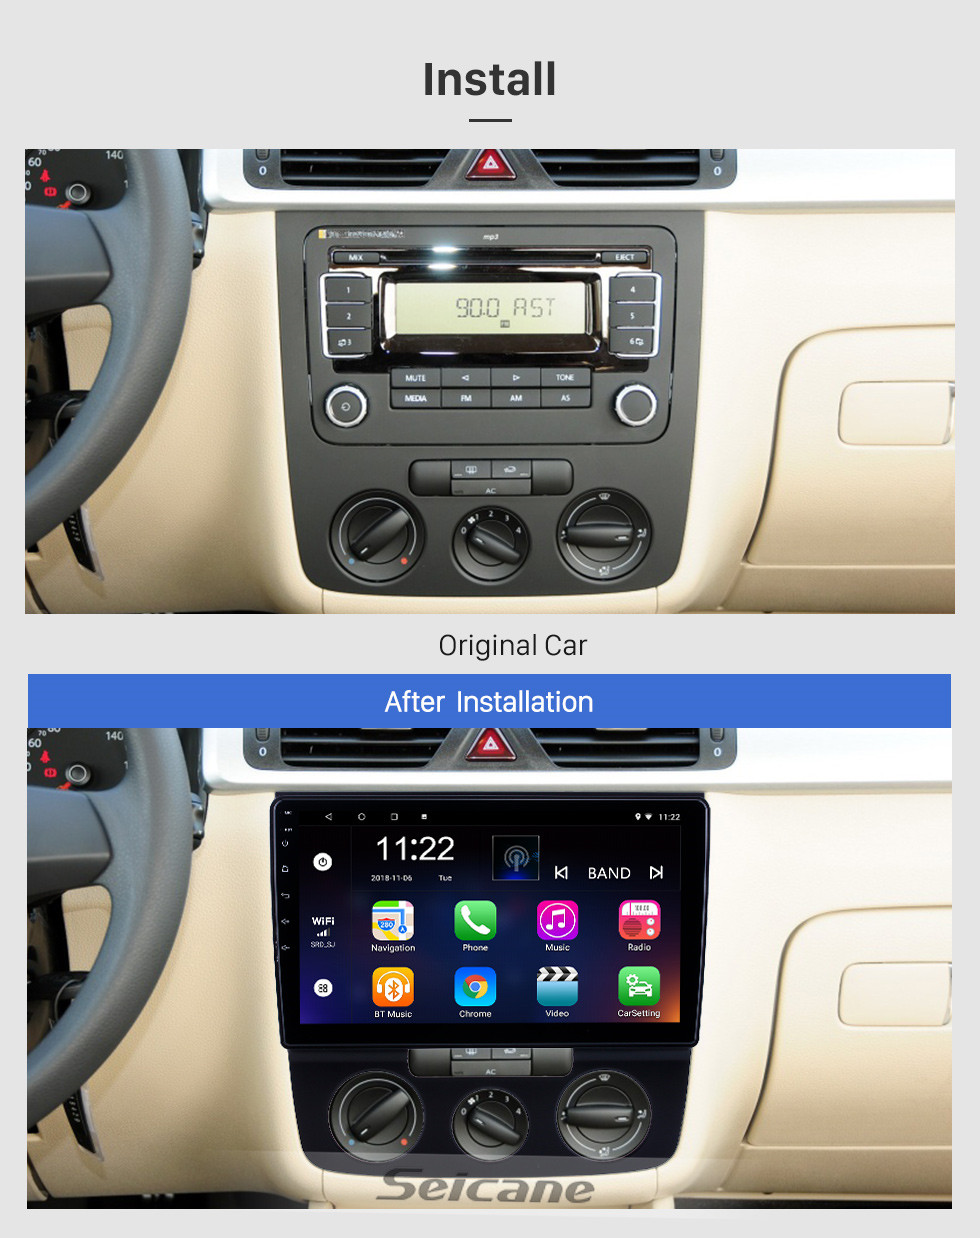 Seicane 10.1 inch Android 10.0 GPS Navigation Radio for 2006-2010 VW Volkswagen Bora Manual A/C With HD Touchscreen Bluetooth support Carplay Rear camera